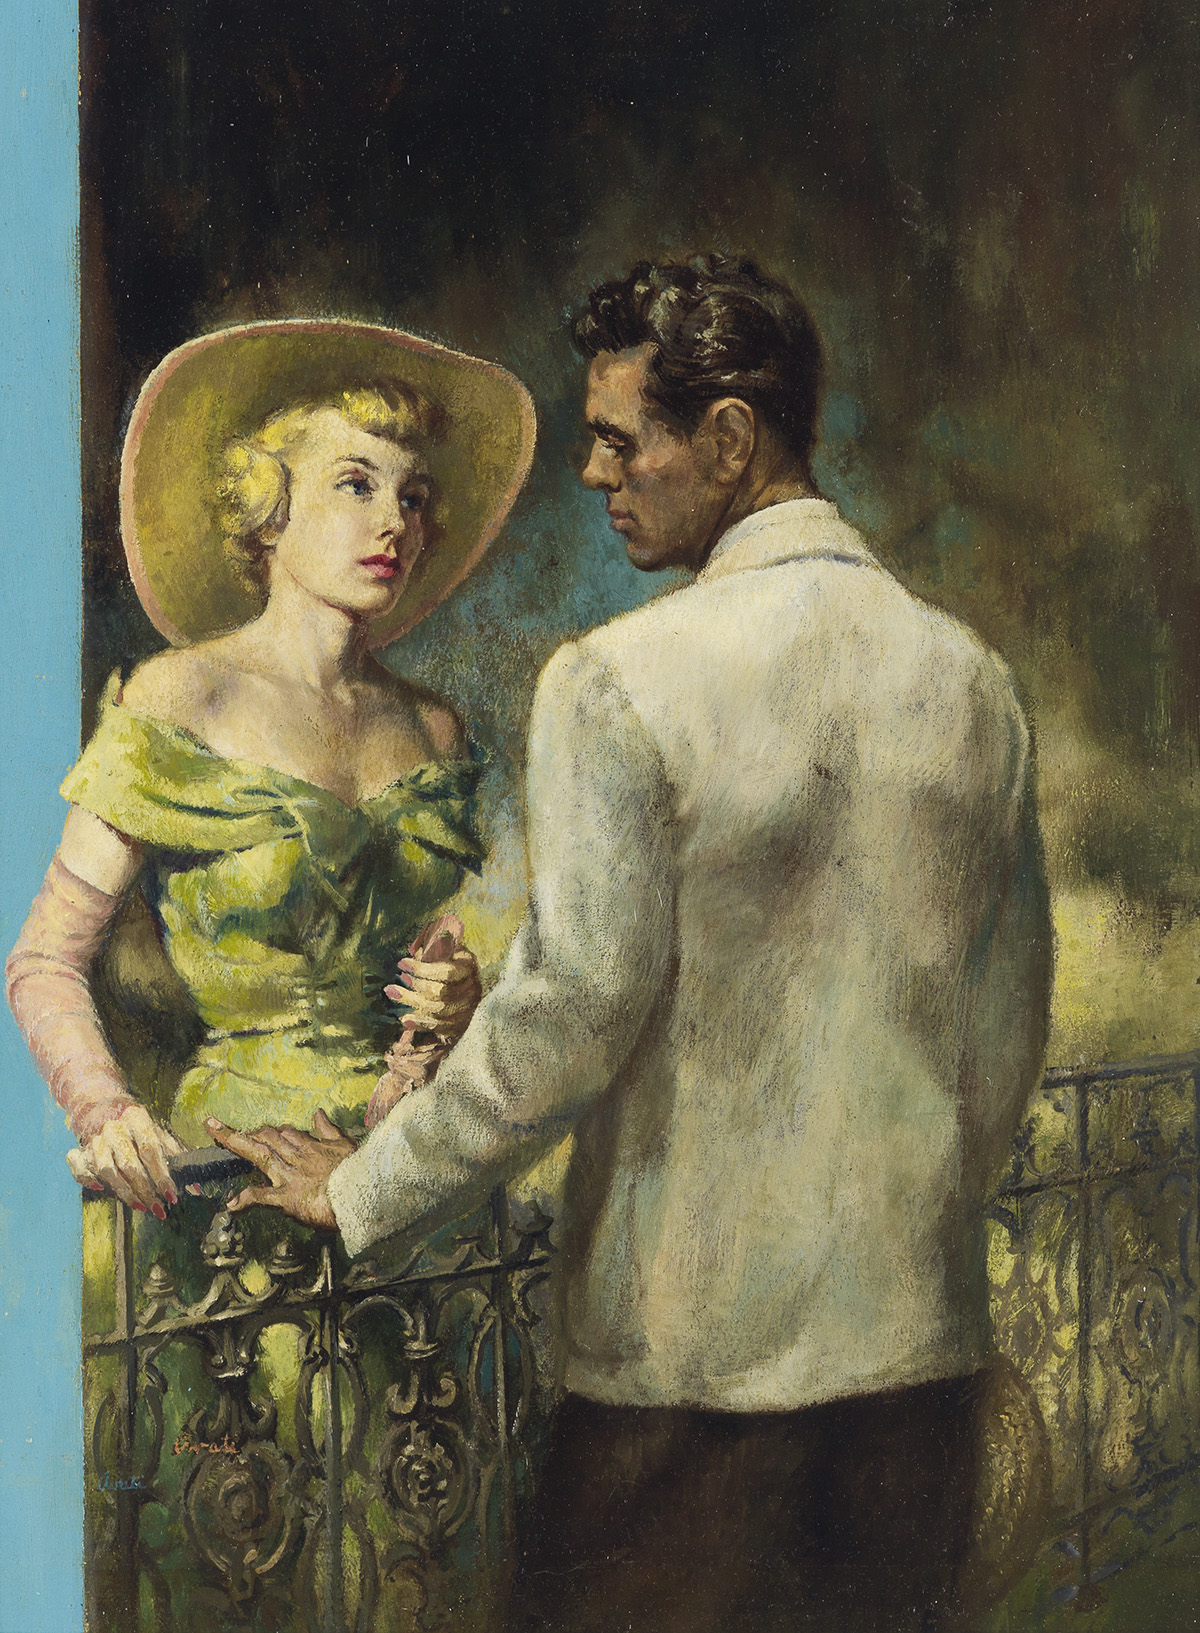 (PULP / PAPERBACK) JAMES AVATI. A Southern White Girl gets the Shock of her Life.